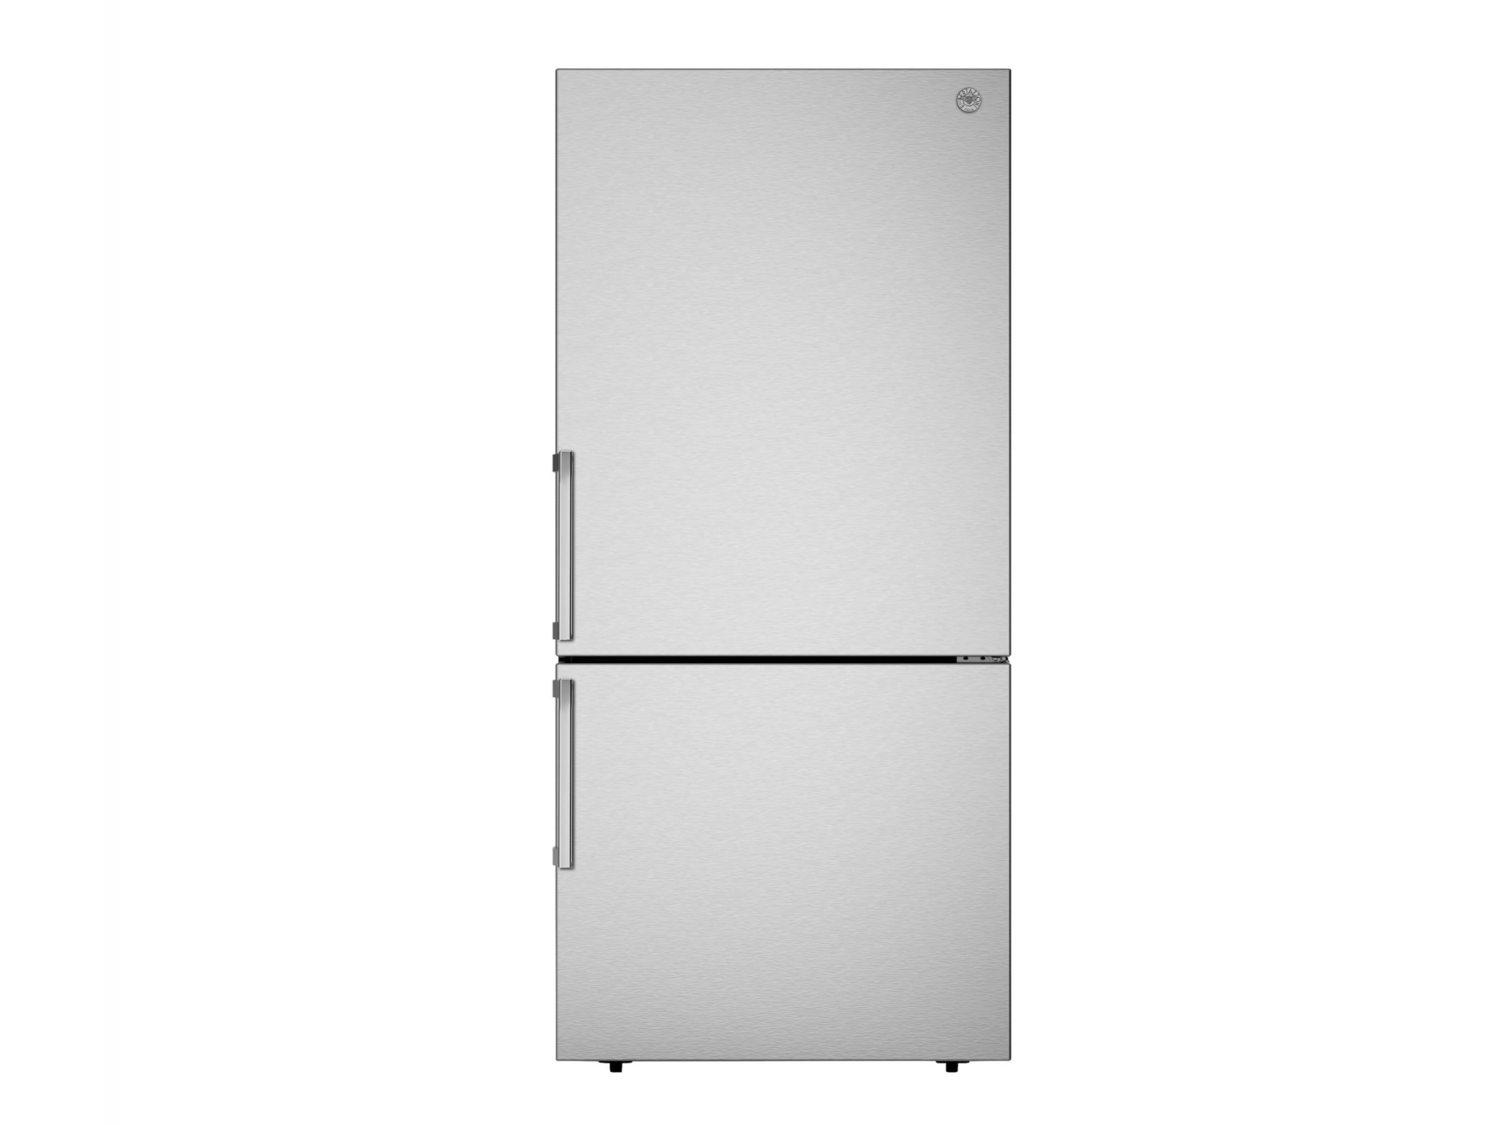 Bertazzoni31 Inch Freestanding Bottom Mount Refrigerator Stainless Steel